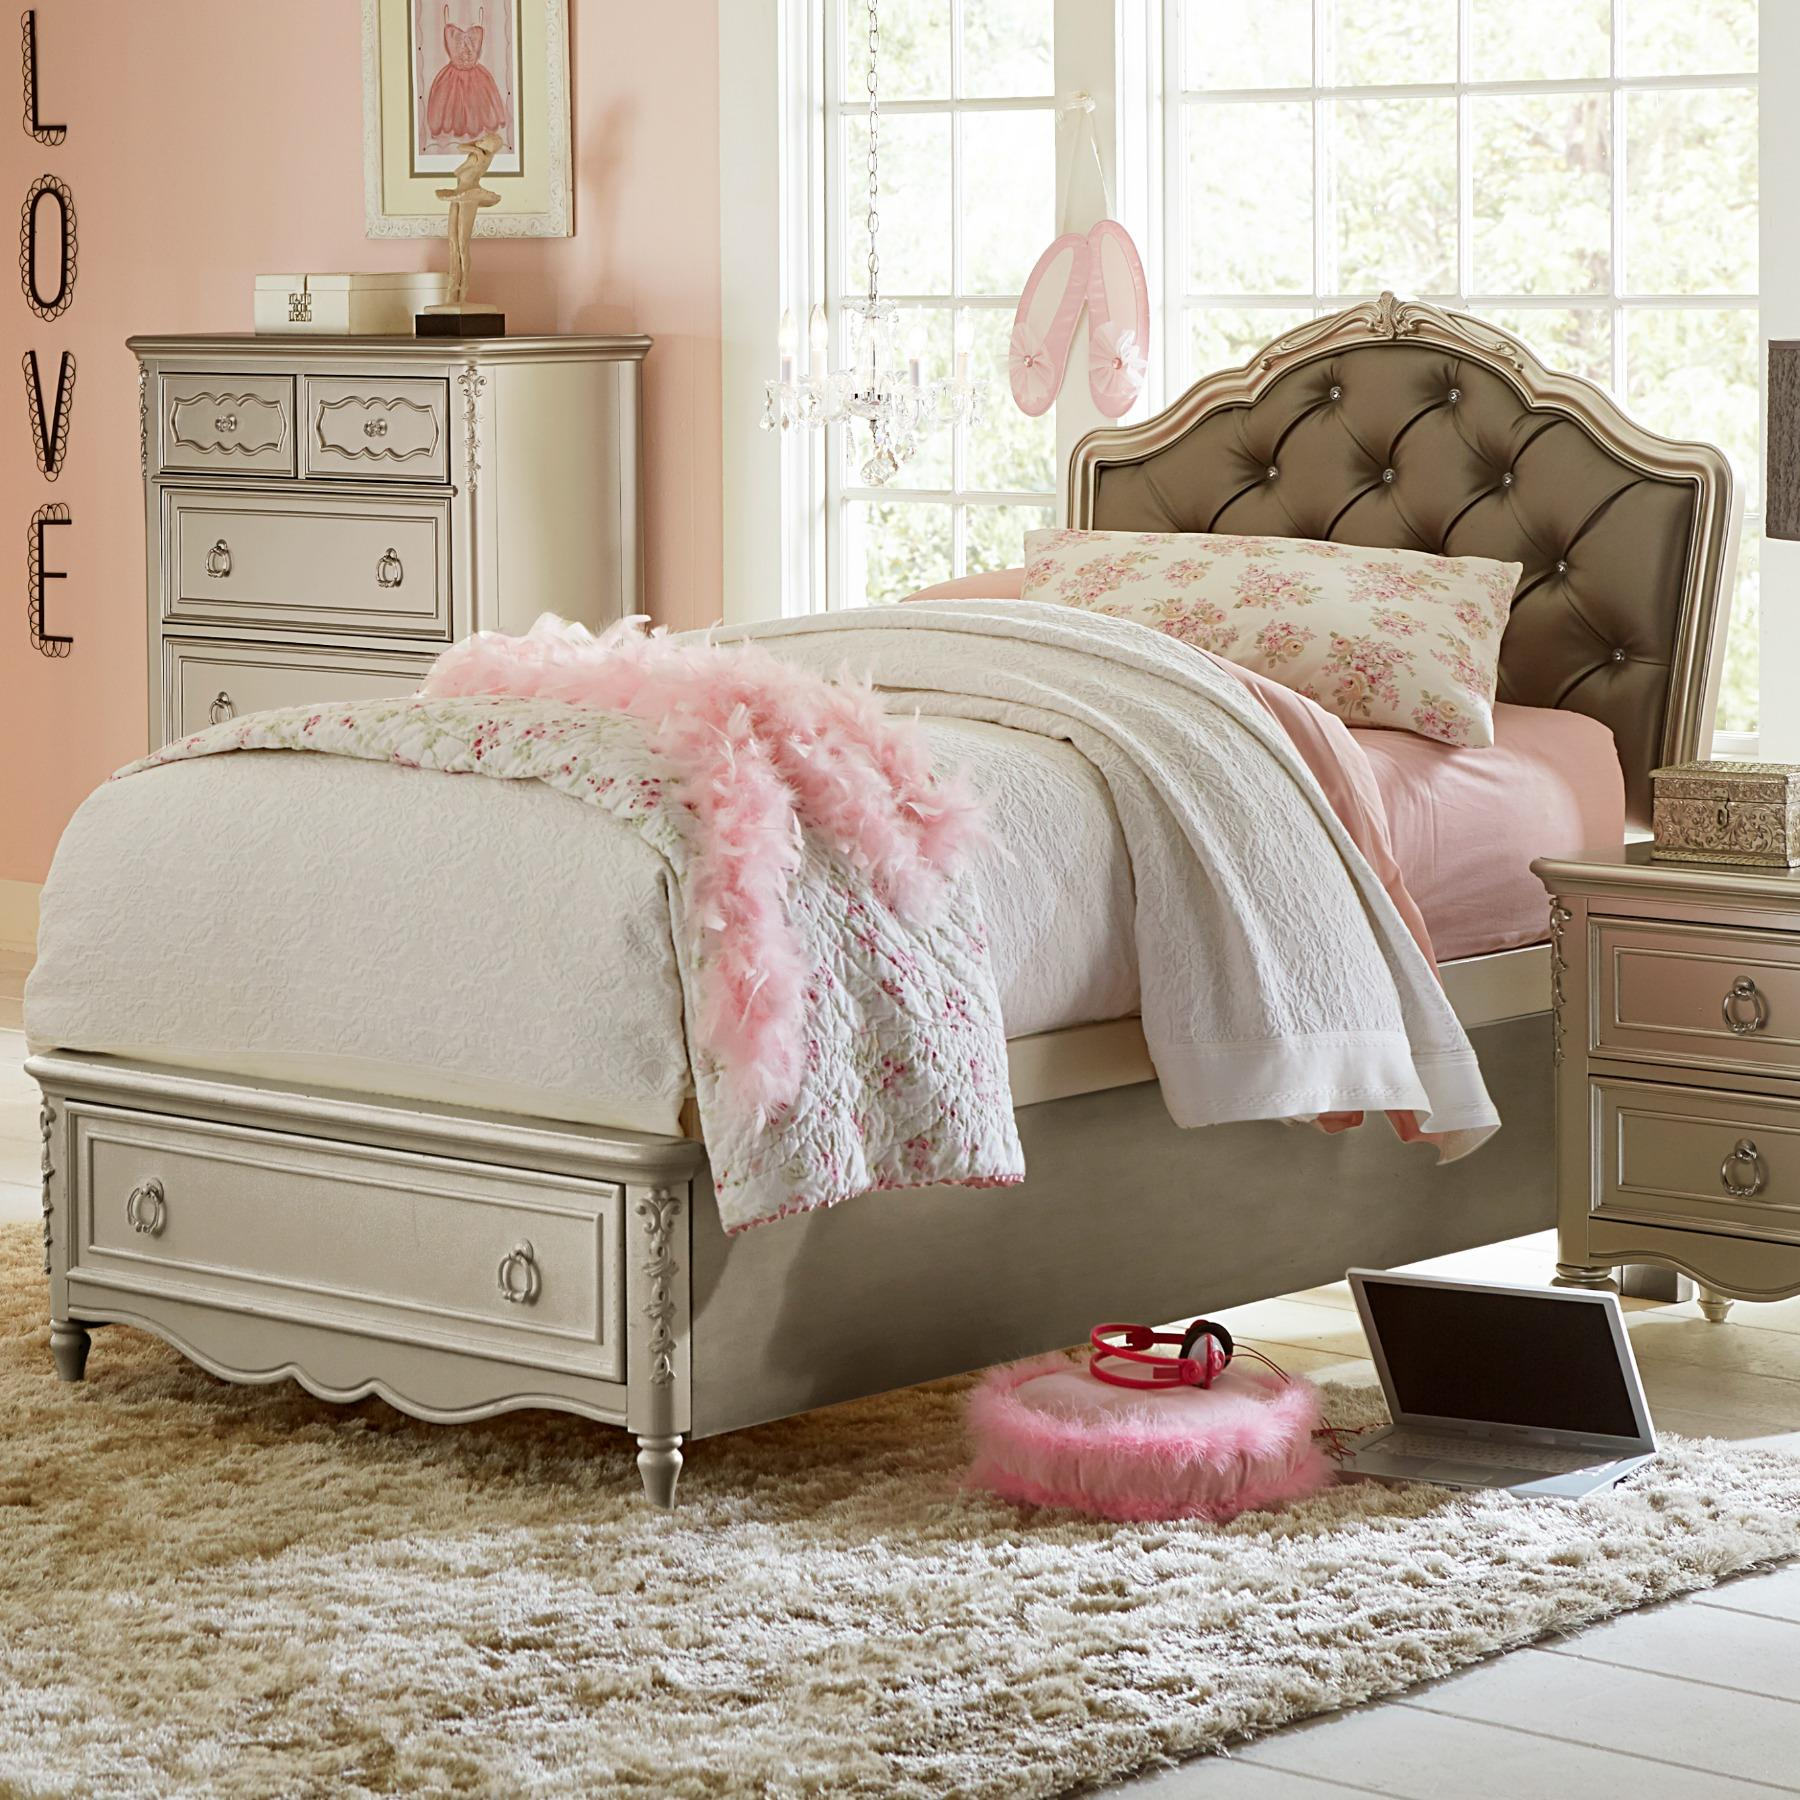 for king girls wood craftsmanbb twin design princess best cover bed size canopy beds